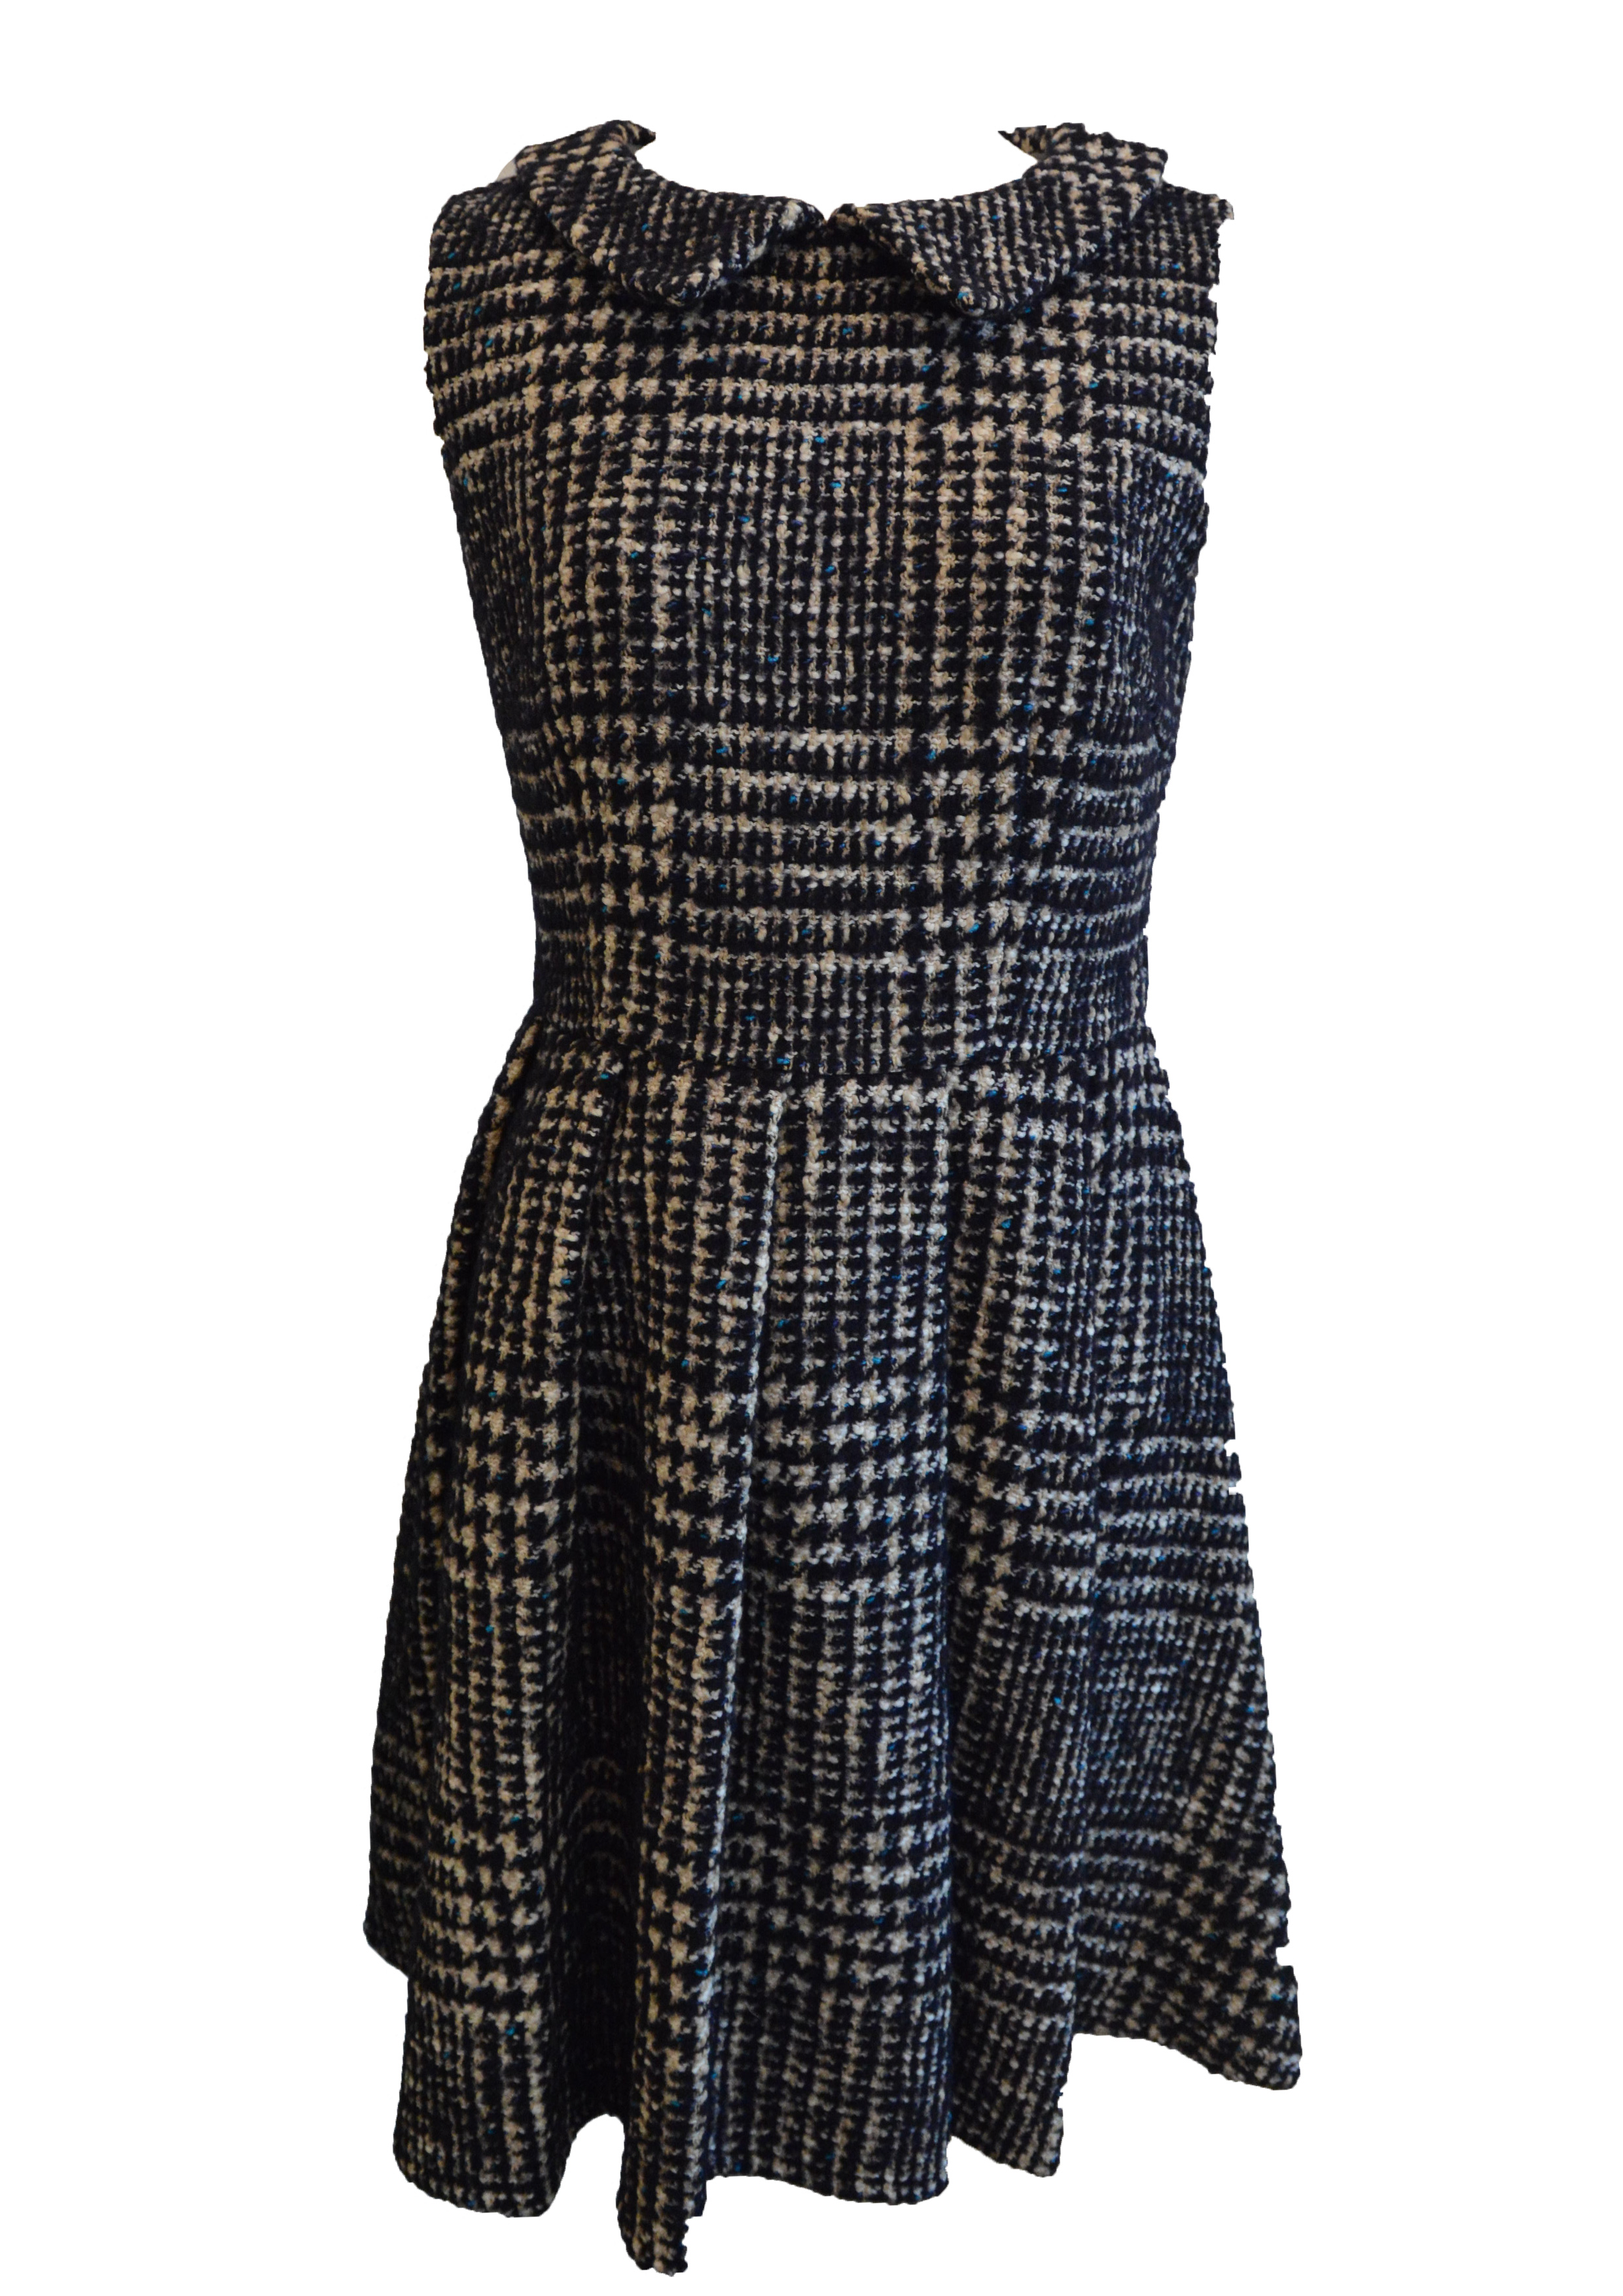 【selva secreta】TWEED DRESS(mix-black)